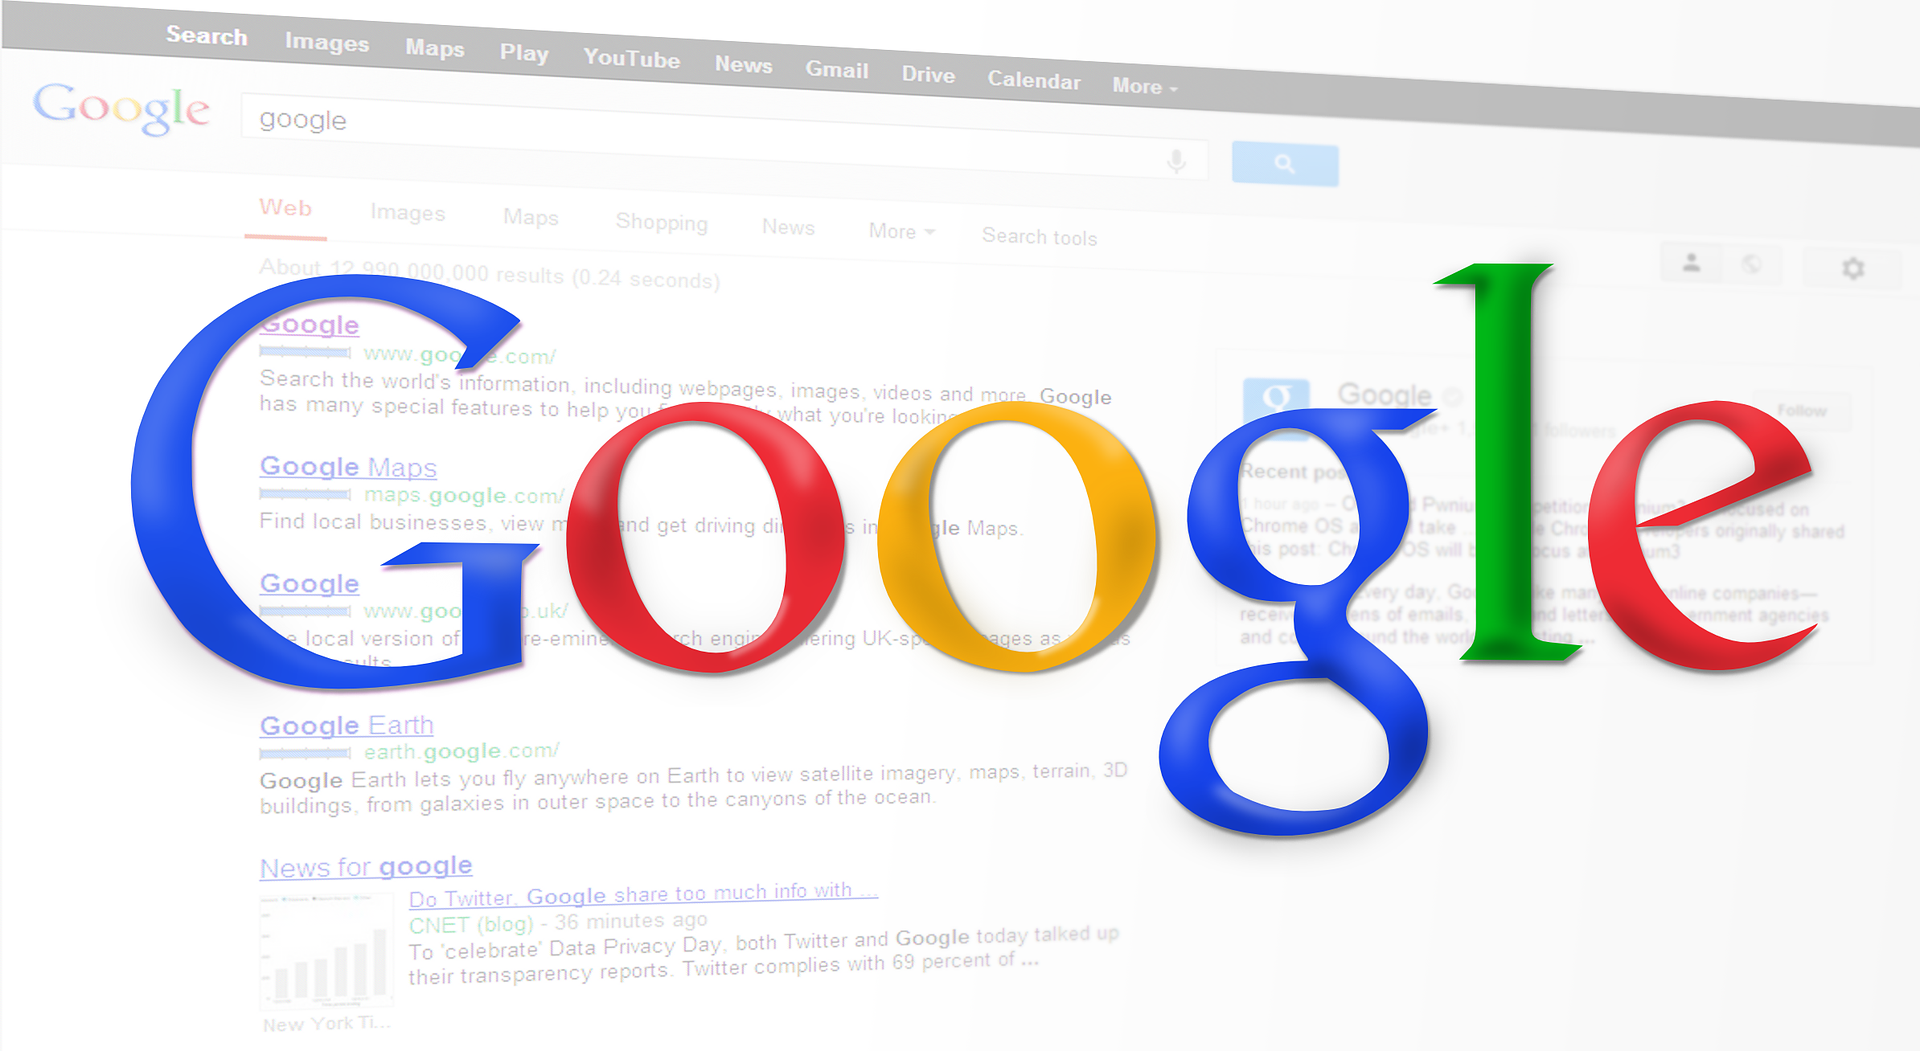 e6ec228aa86d922f6358d13d6e65d6d8 - How To Get My Web Page On Google Search